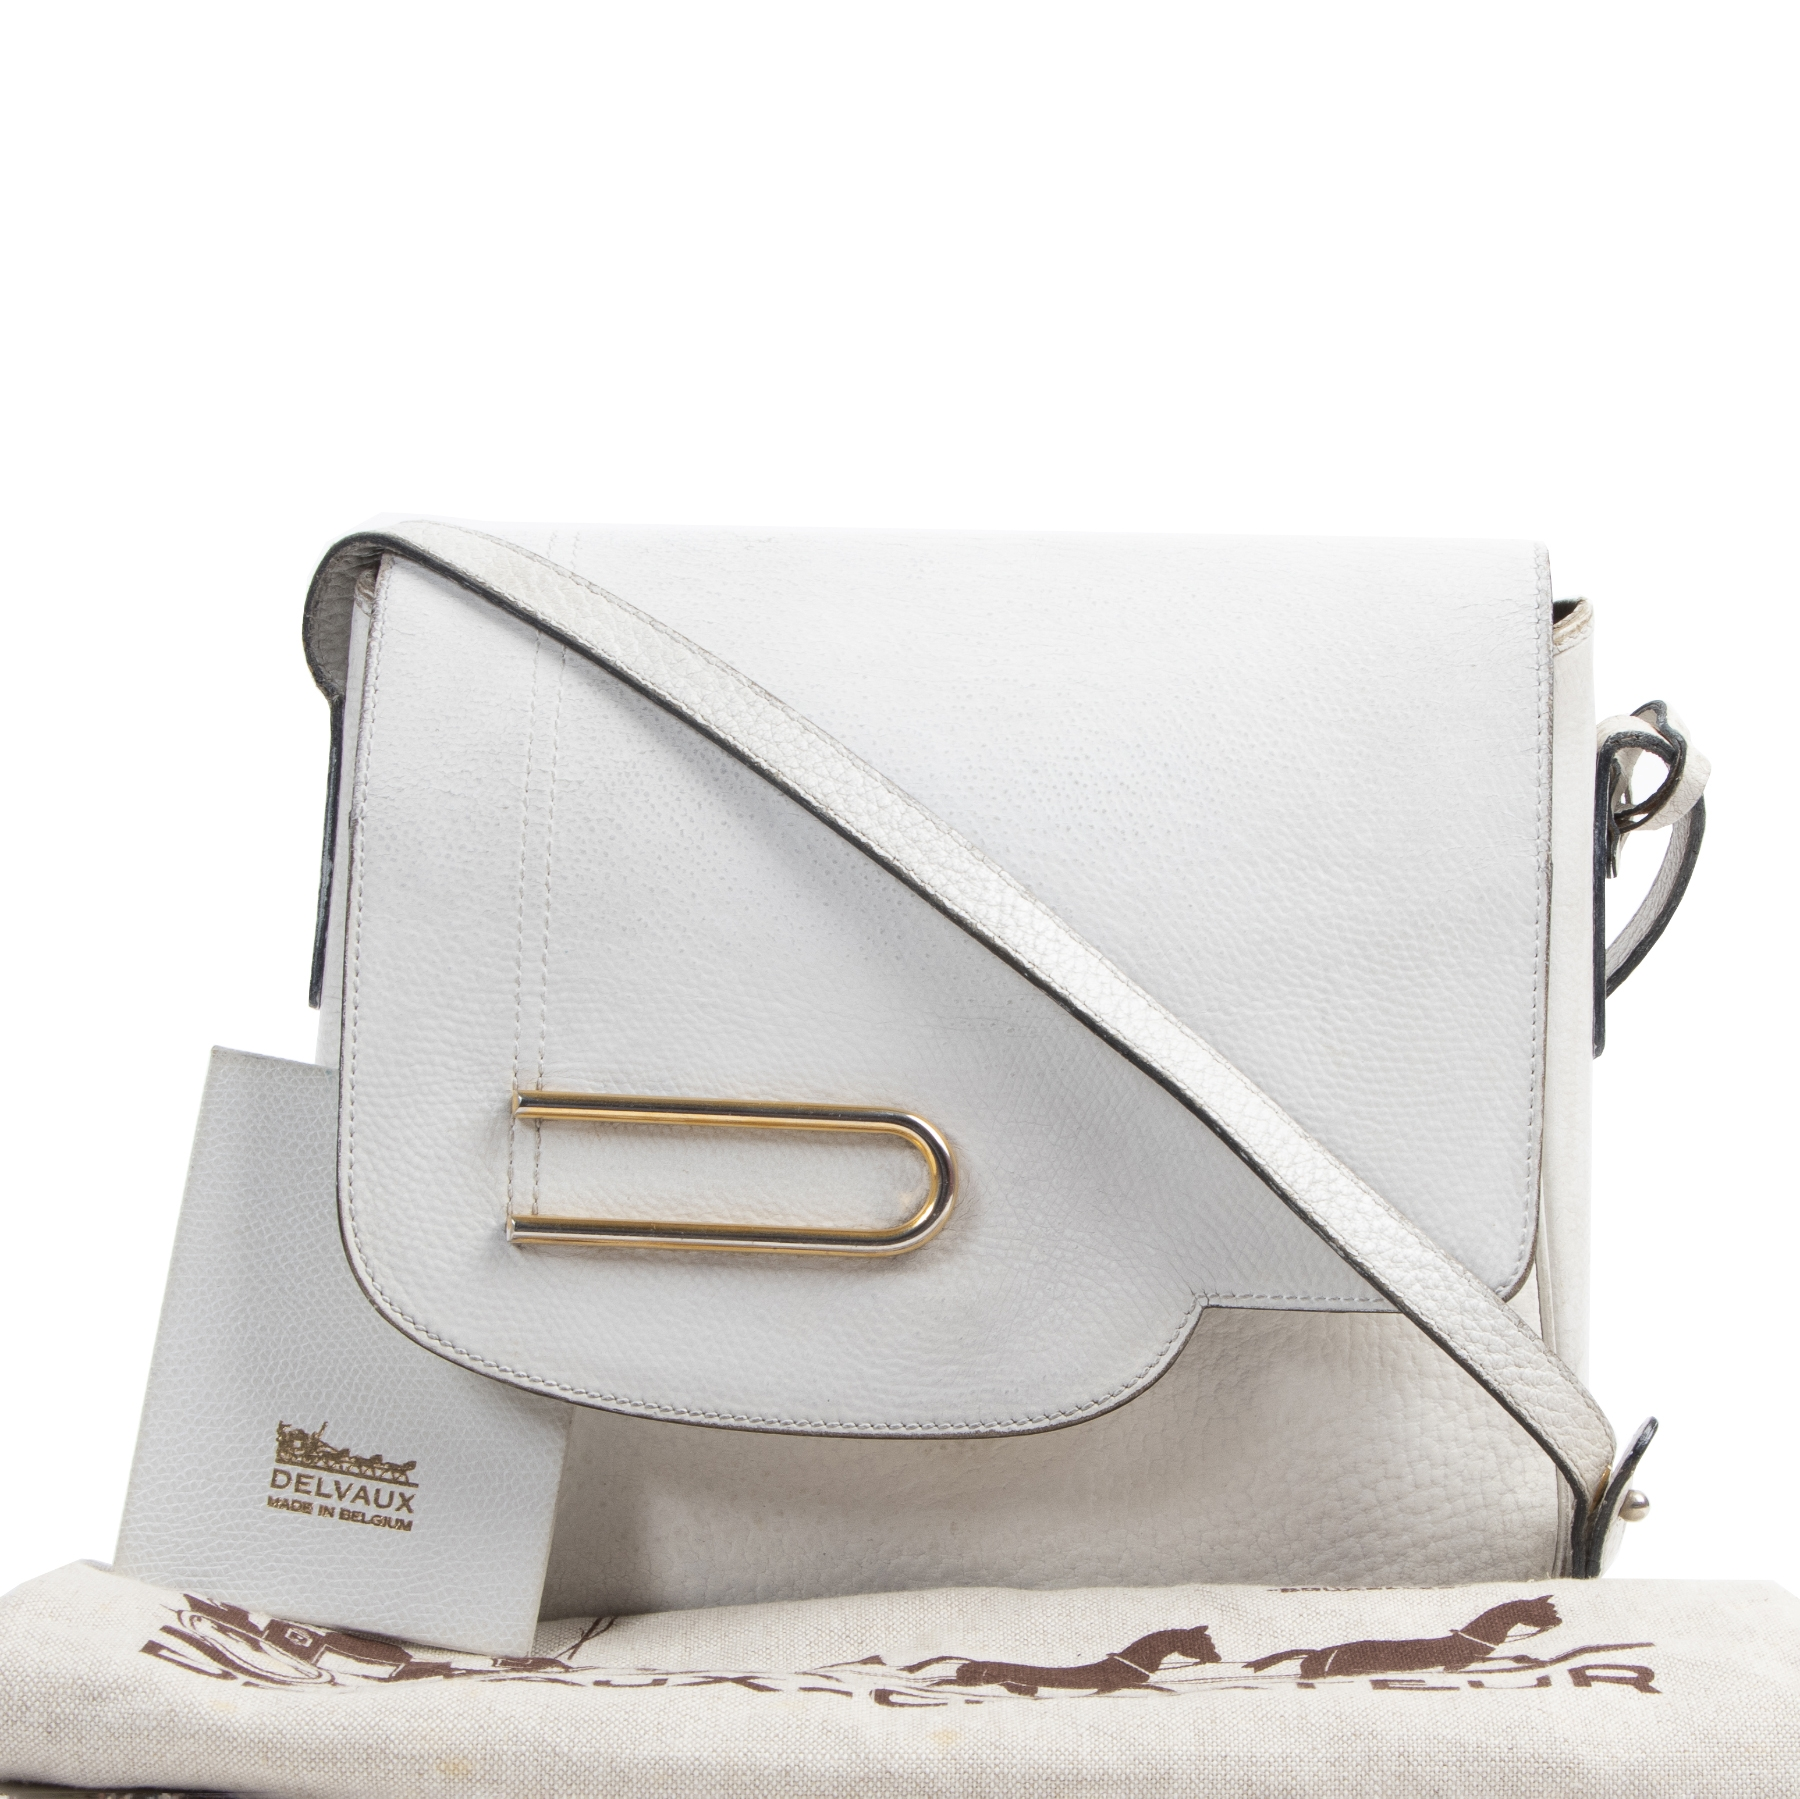 Delvaux White Leather Shoulder Bag. Authentieke tweedehands vintage Delvaux handtassen bij LabelLOV Antwerpen. Authentique seconde-main luxury vintage en ligne webshop LabelLOV. Authentic preloved vintage Delvaux handbags at LabelLOV Antwerp.